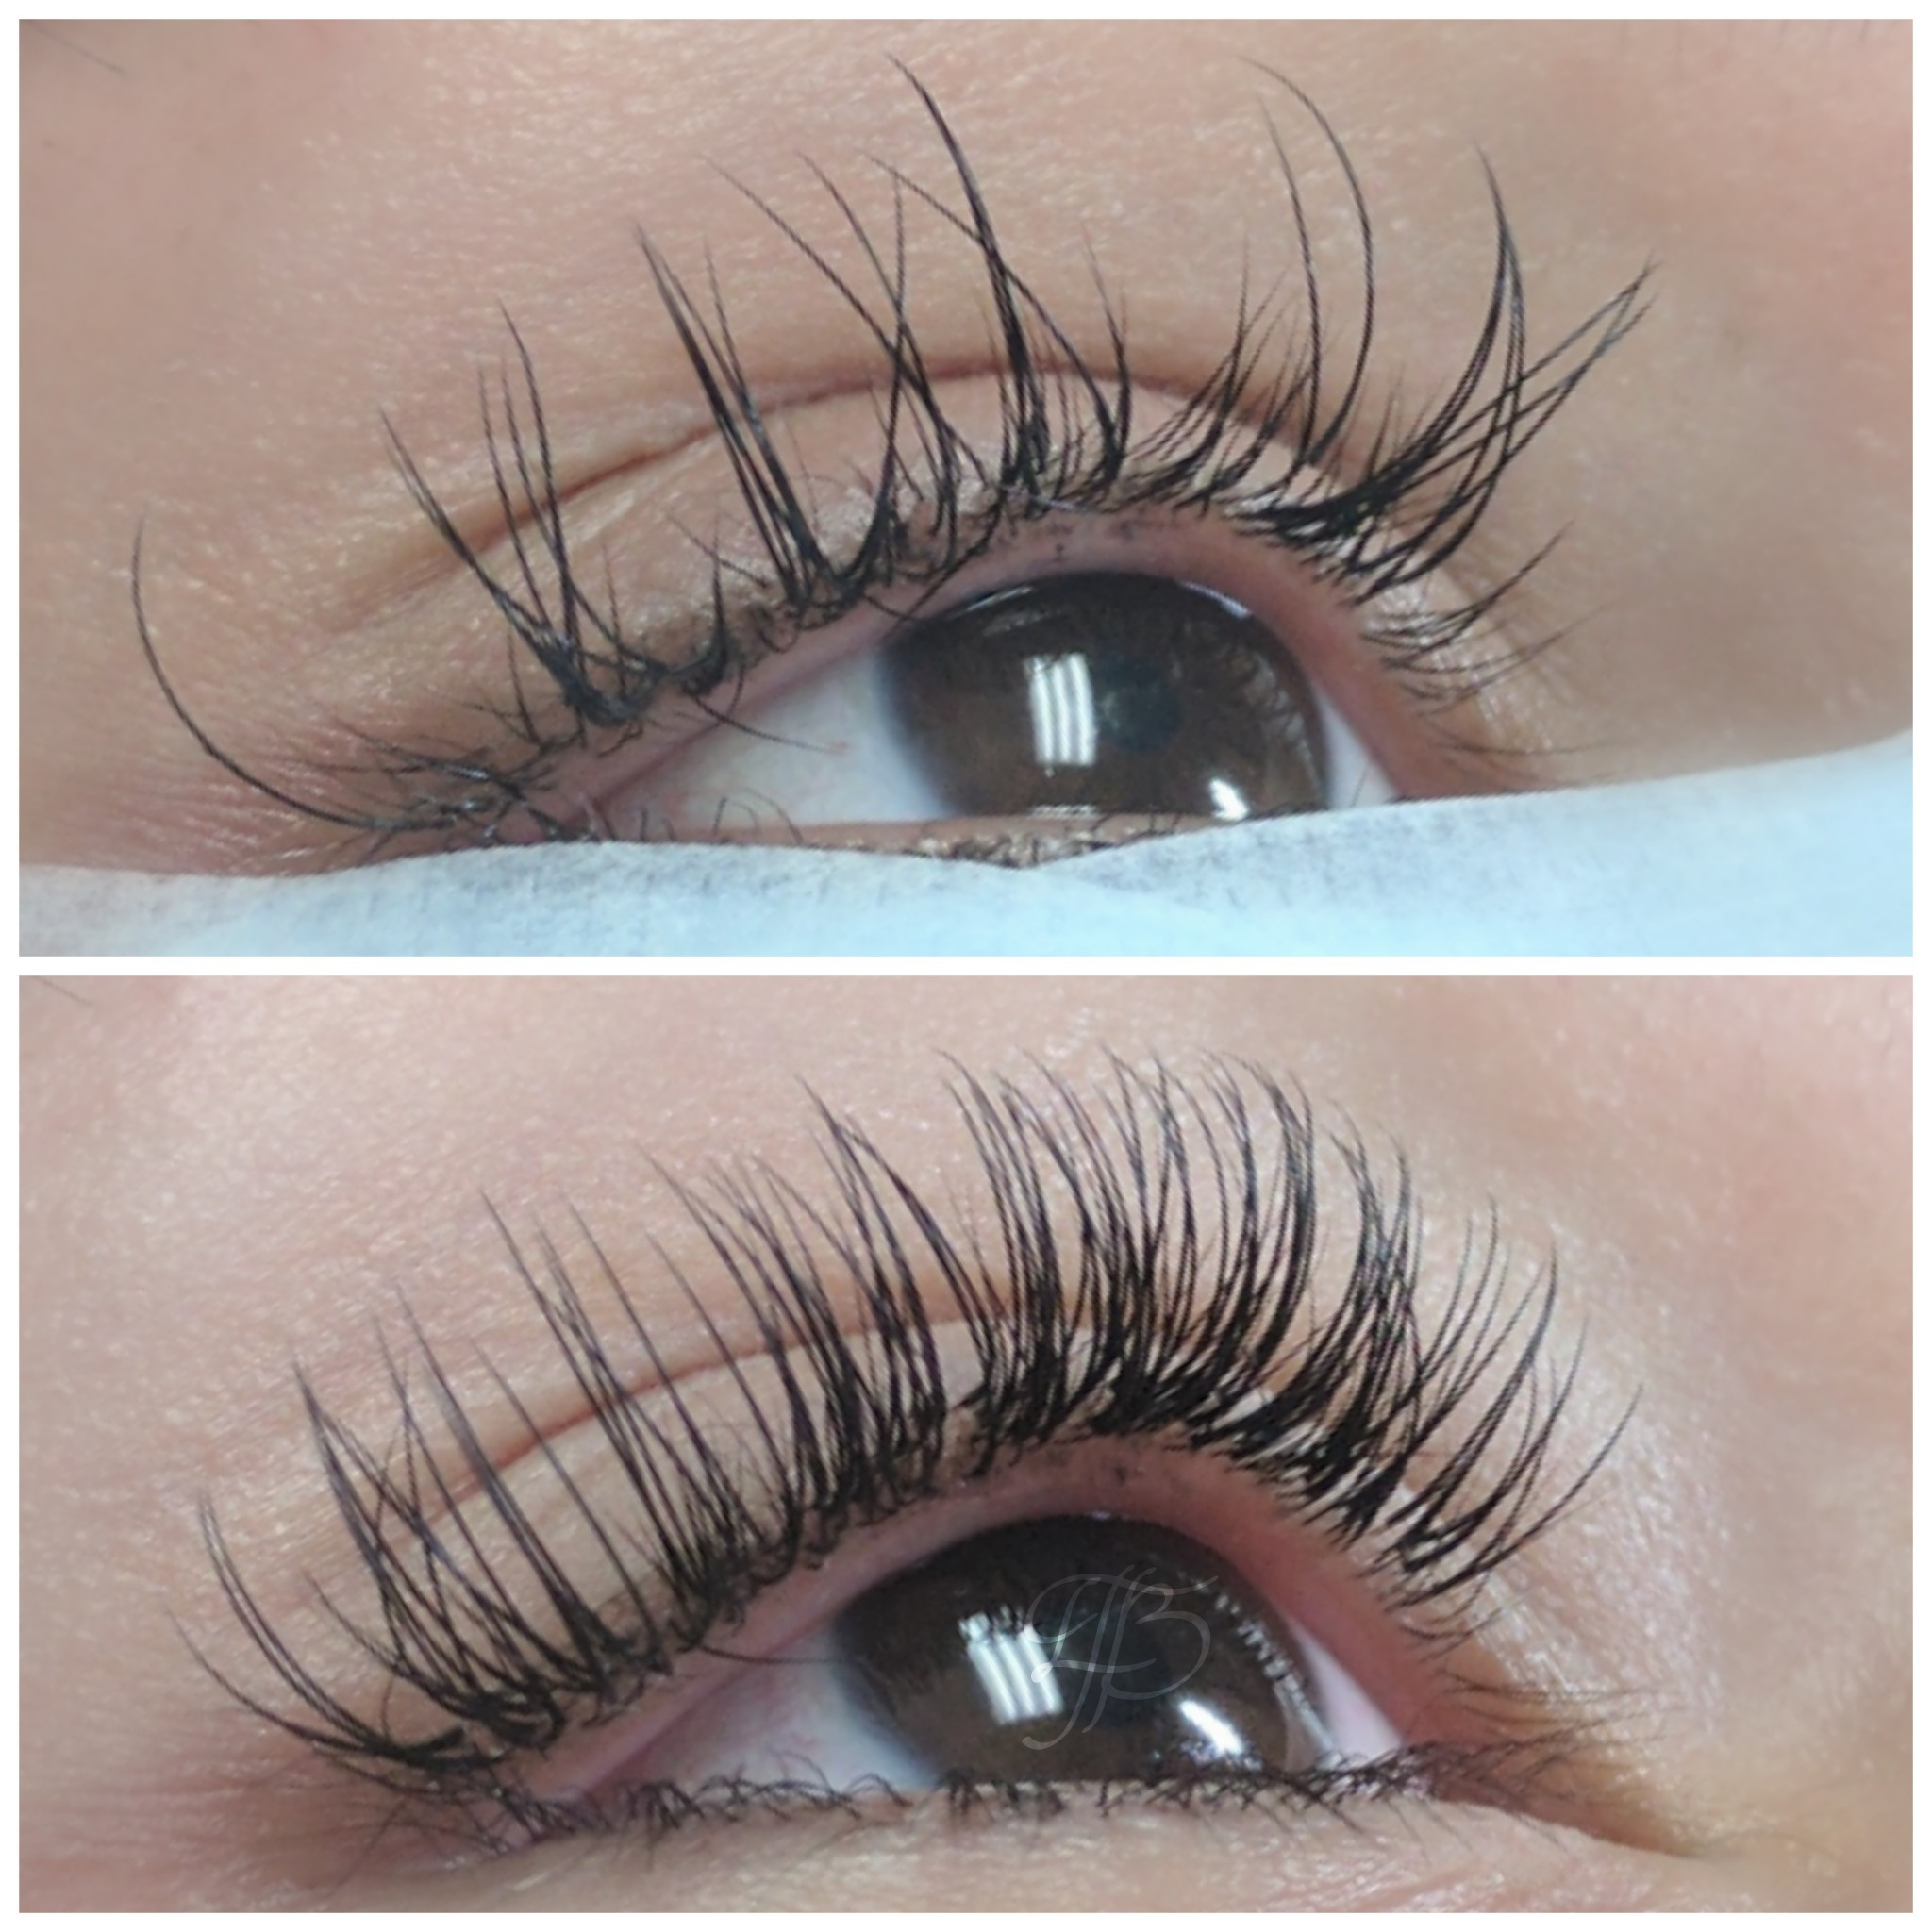 before:  lash extensions by another artist   after:  Removal + Classic Full Set by The Studio